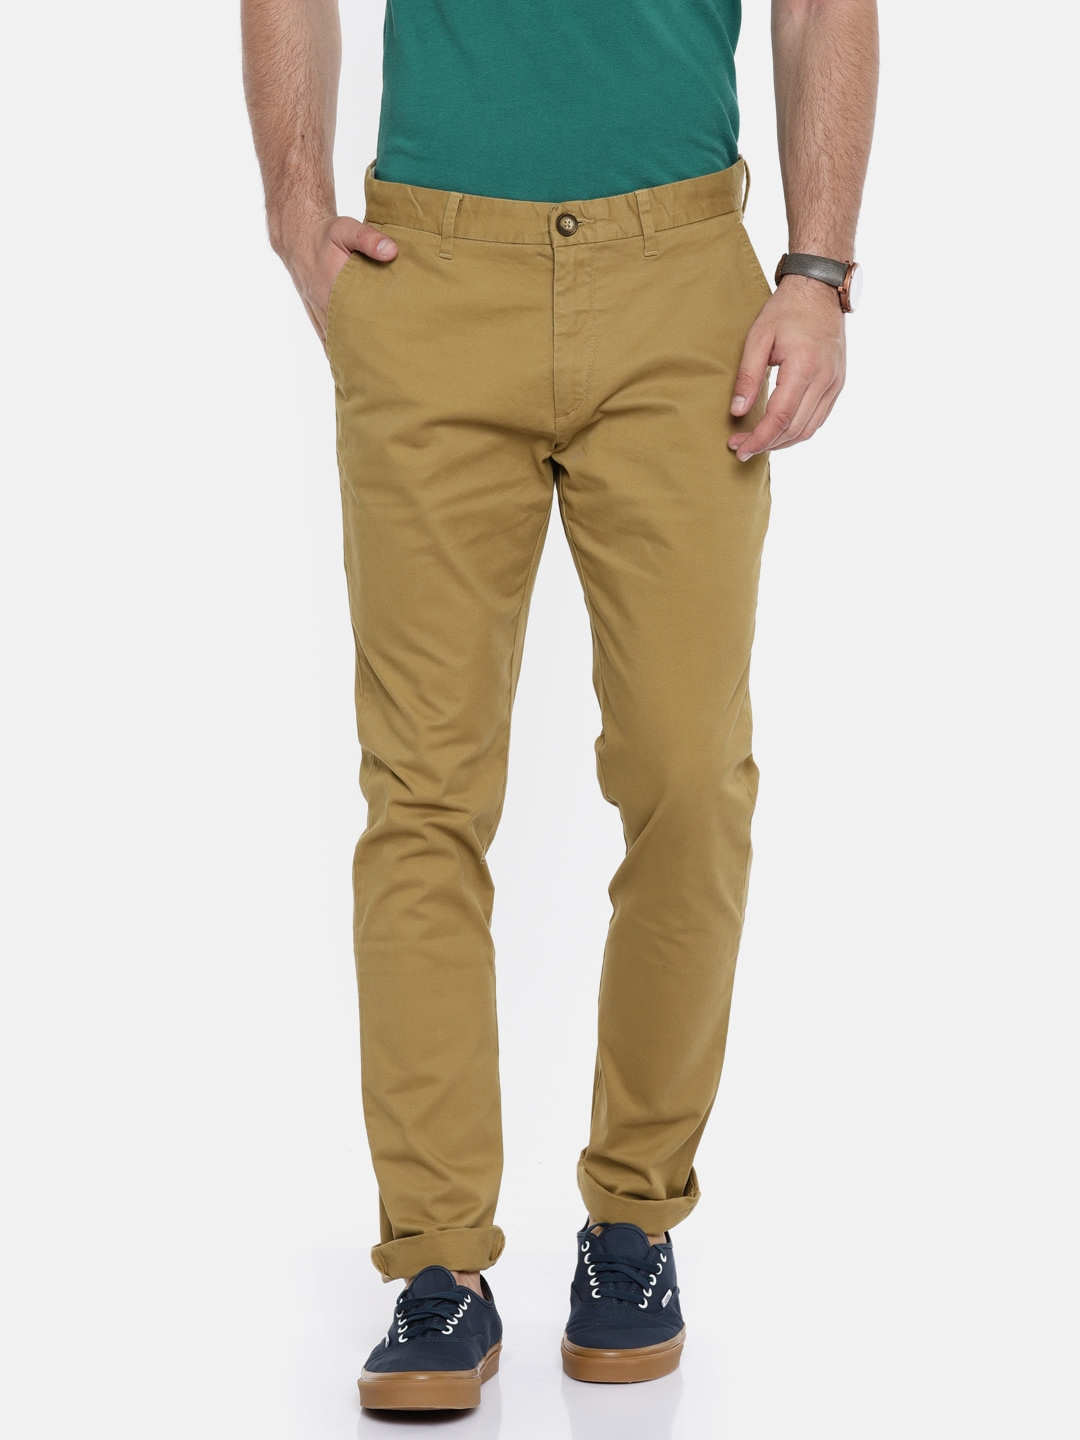 73c91137ec2 Us Polo Assn Trousers - Buy Us Polo Assn Trousers online in India